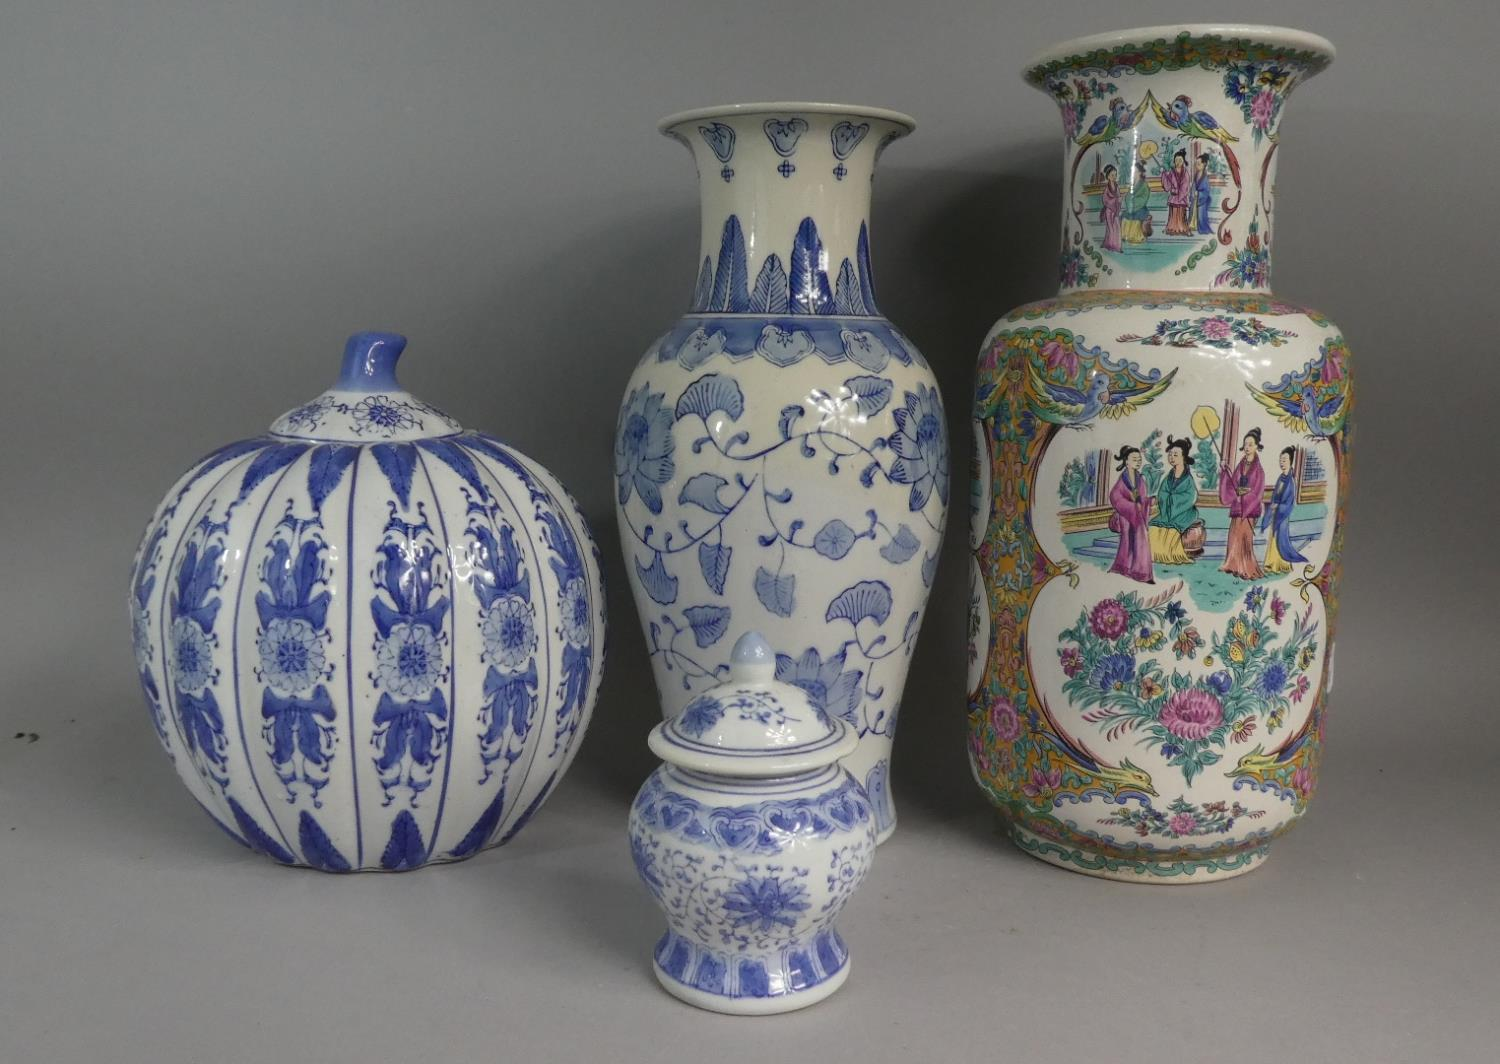 Lot 410 - A Collection of Late 20th Century Oriental Ceramics to Include Vases Etc. Tallest Vase 40cms High.